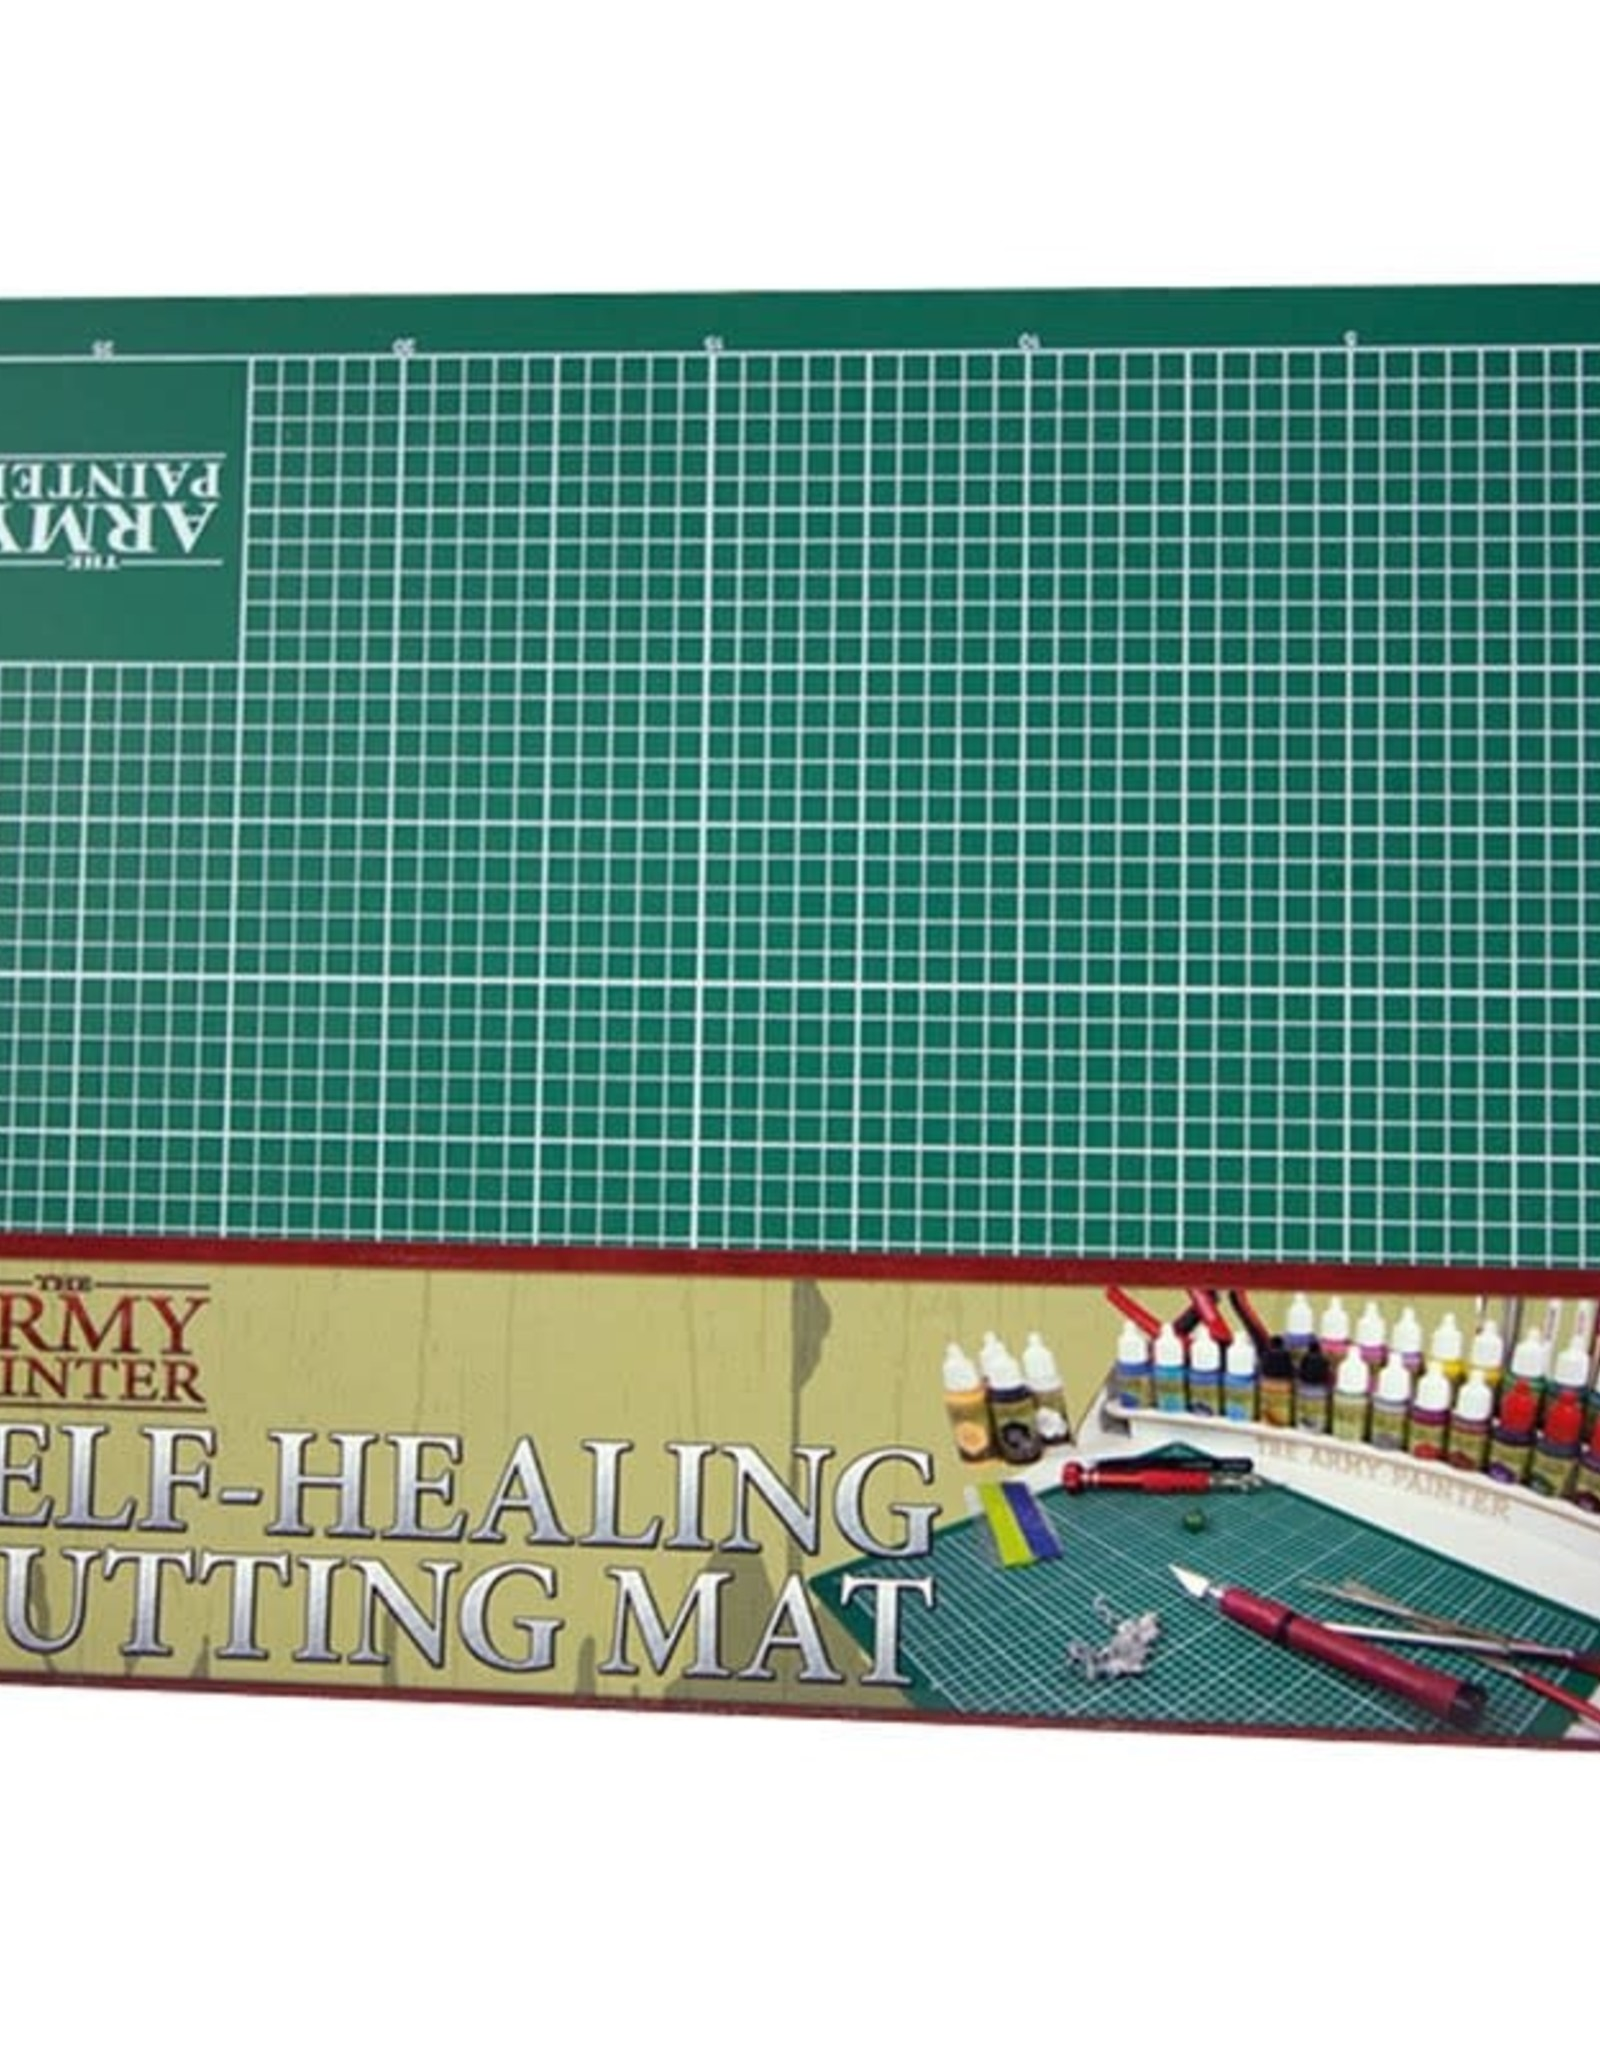 Tools: Self-Healing Cutting Mat